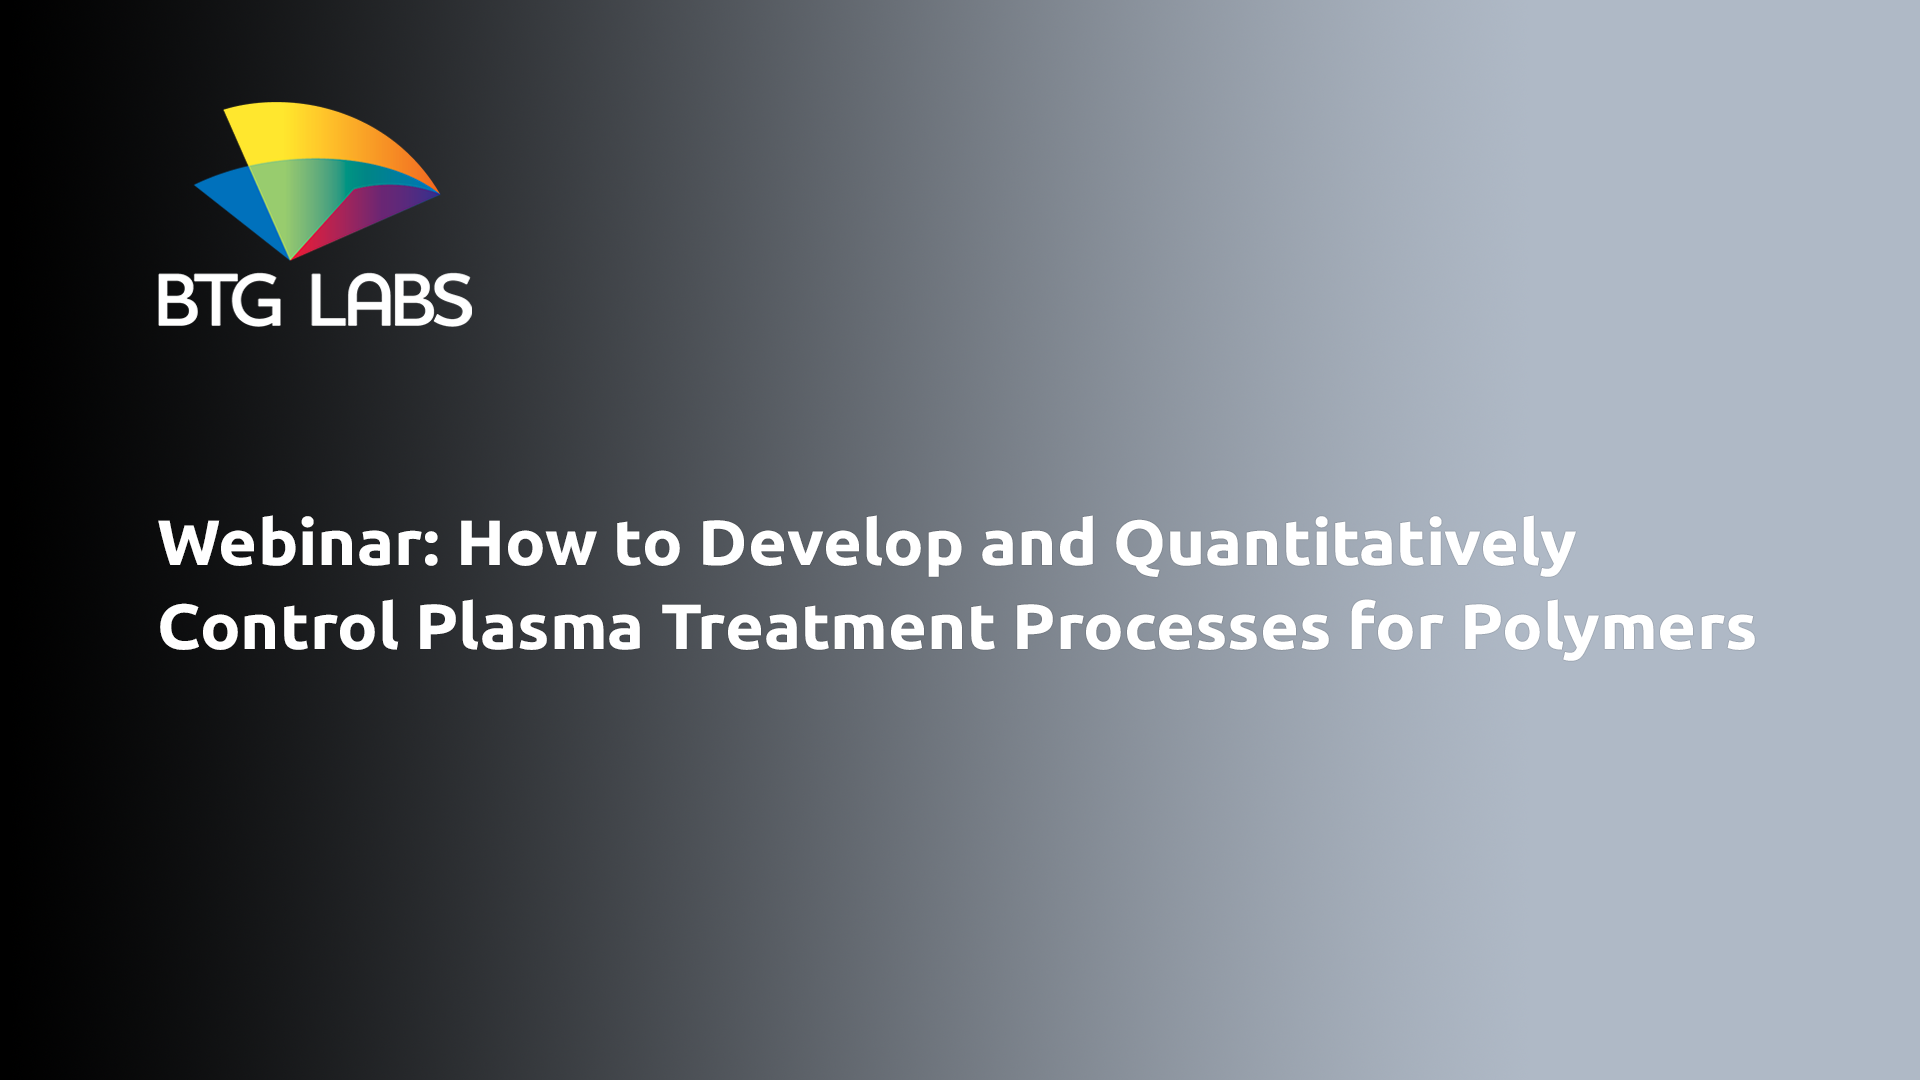 How to Develop and Quantitatively Control Plasma Treatment Processes for Polymers